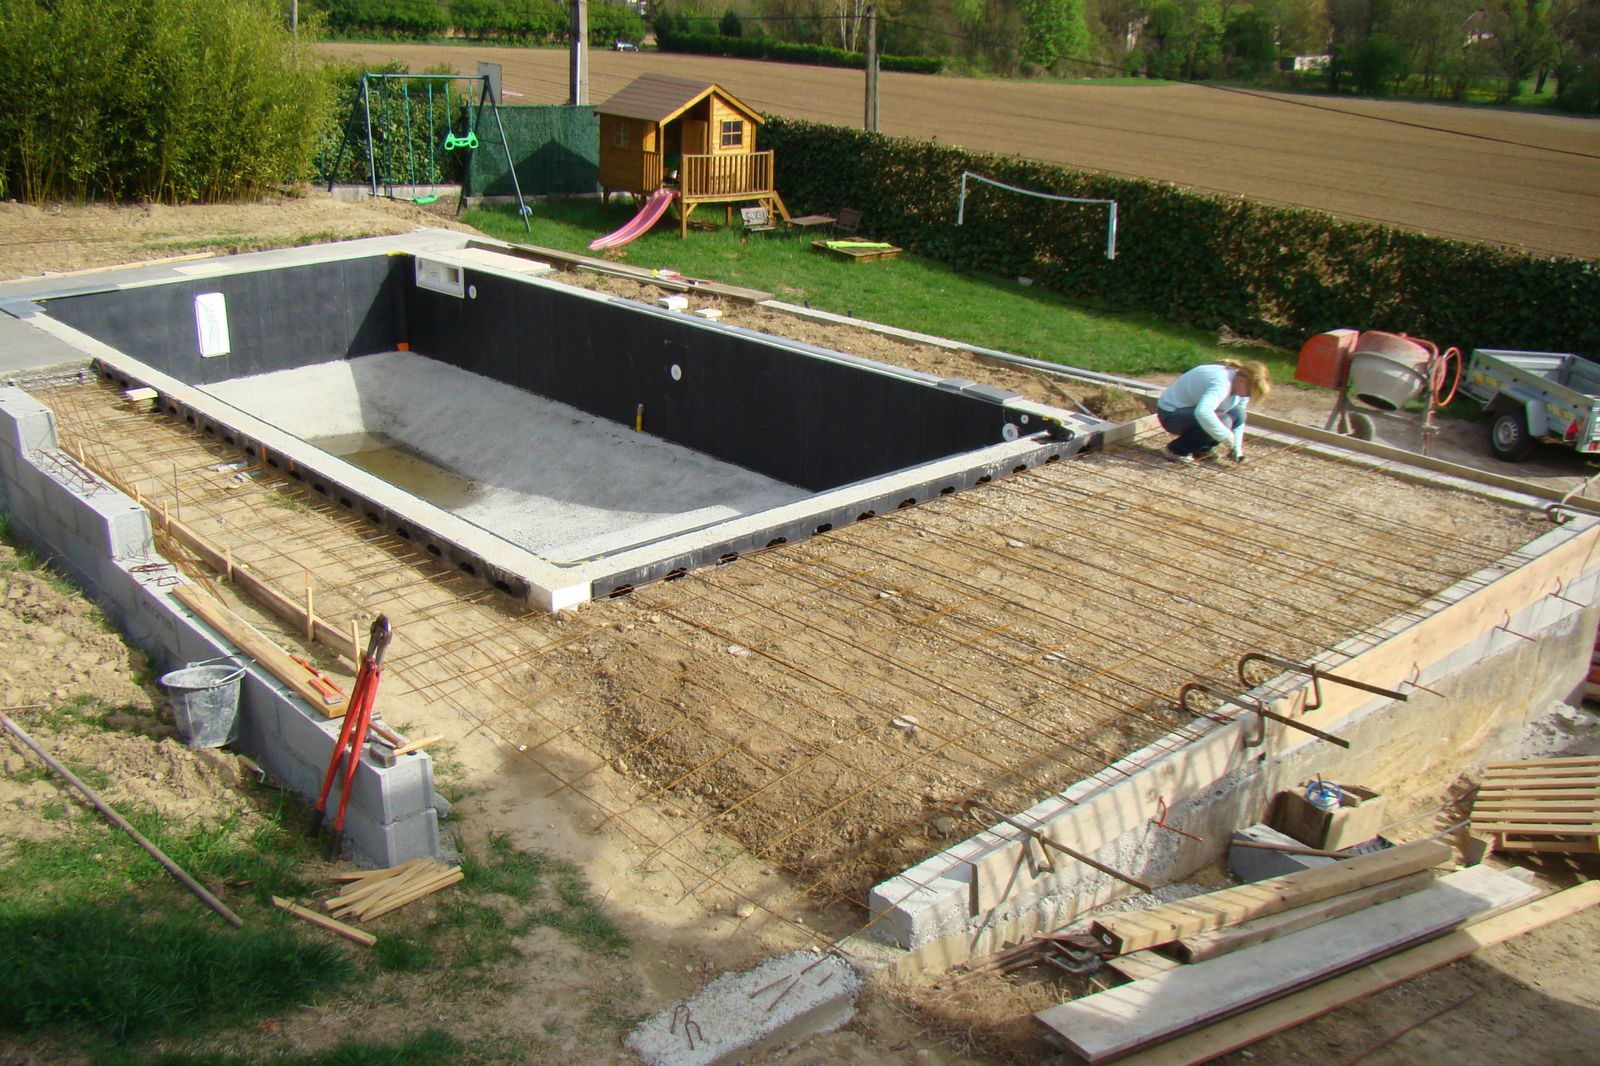 Pr paration du coulage des plages la pose d 39 un kit for Construction piscine magiline